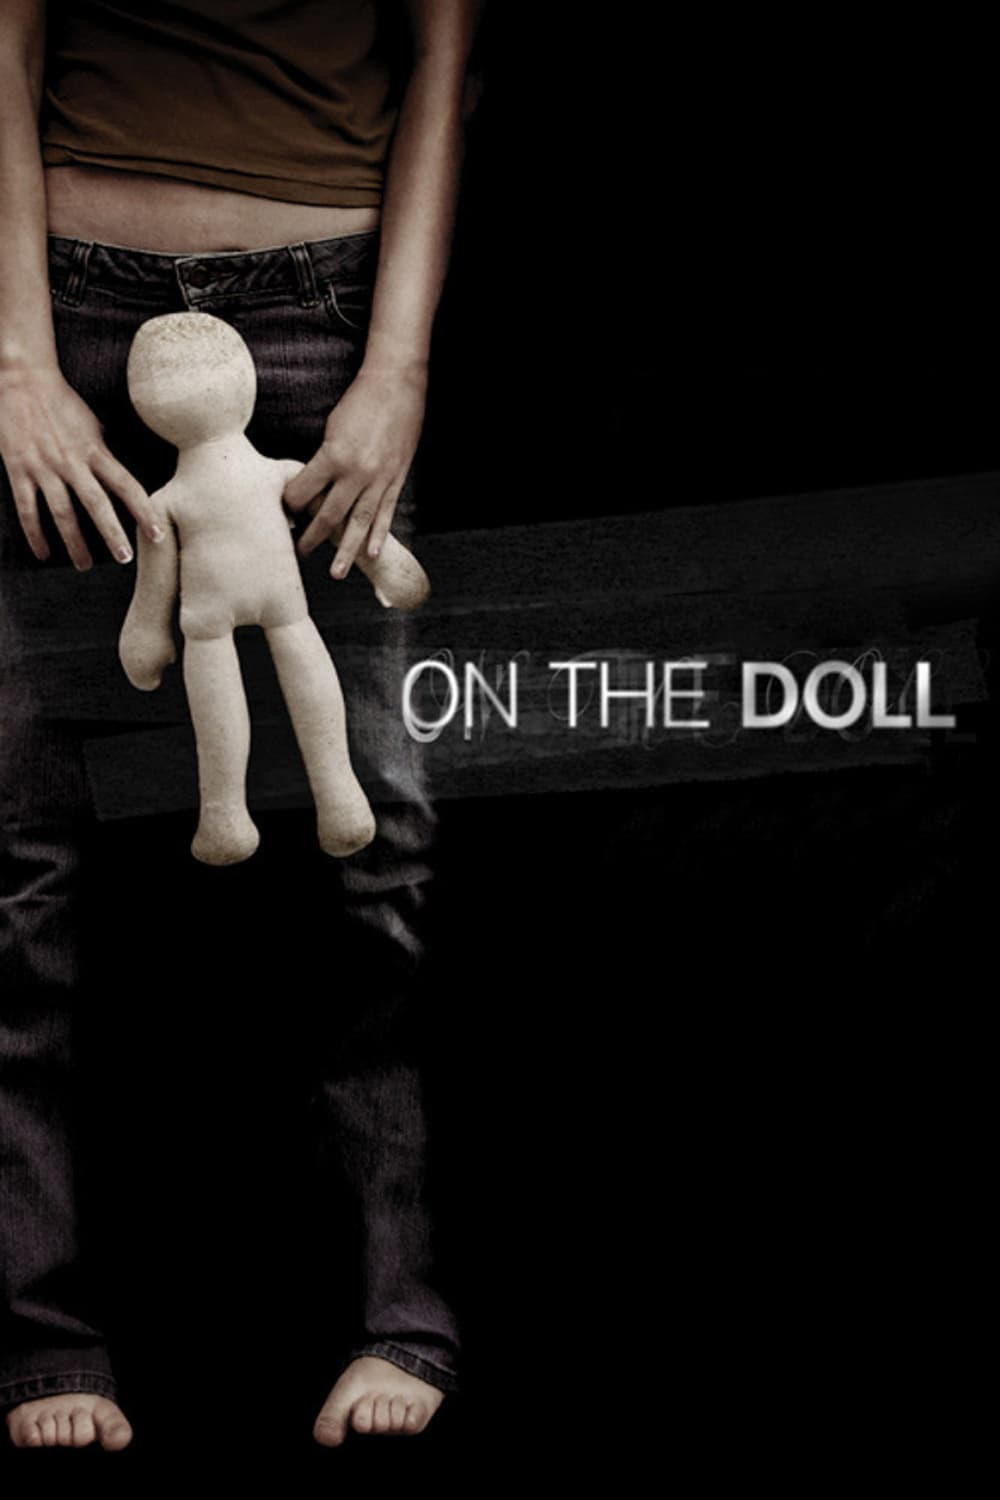 On the Doll, 2007